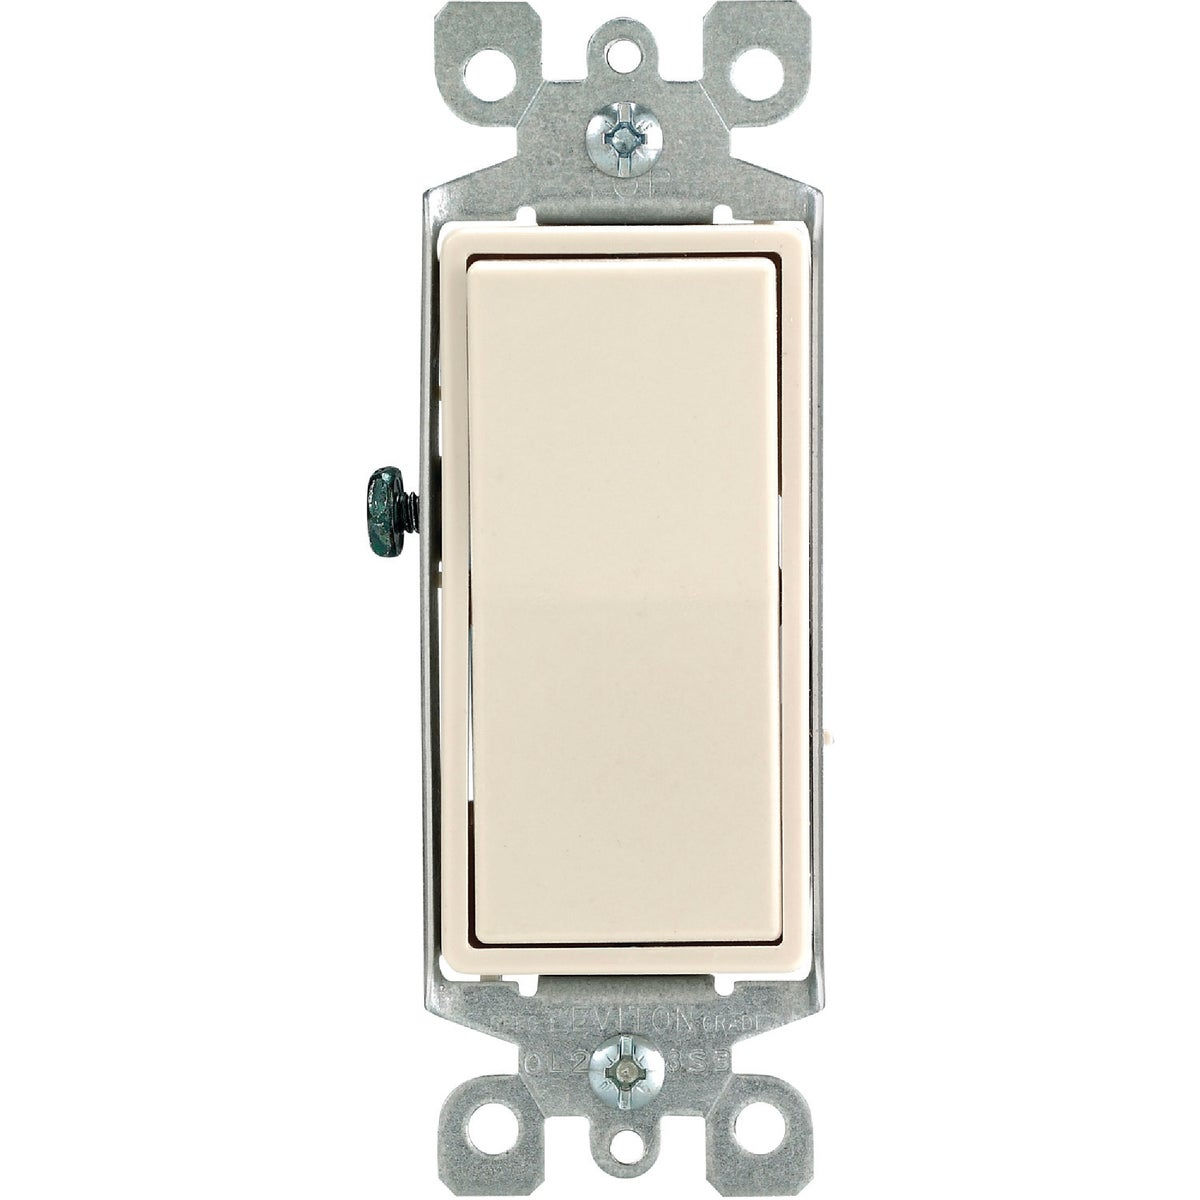 LT ALM 3-WAY GRND SWITCH - R66-05613-2TS by Leviton Mfg Co